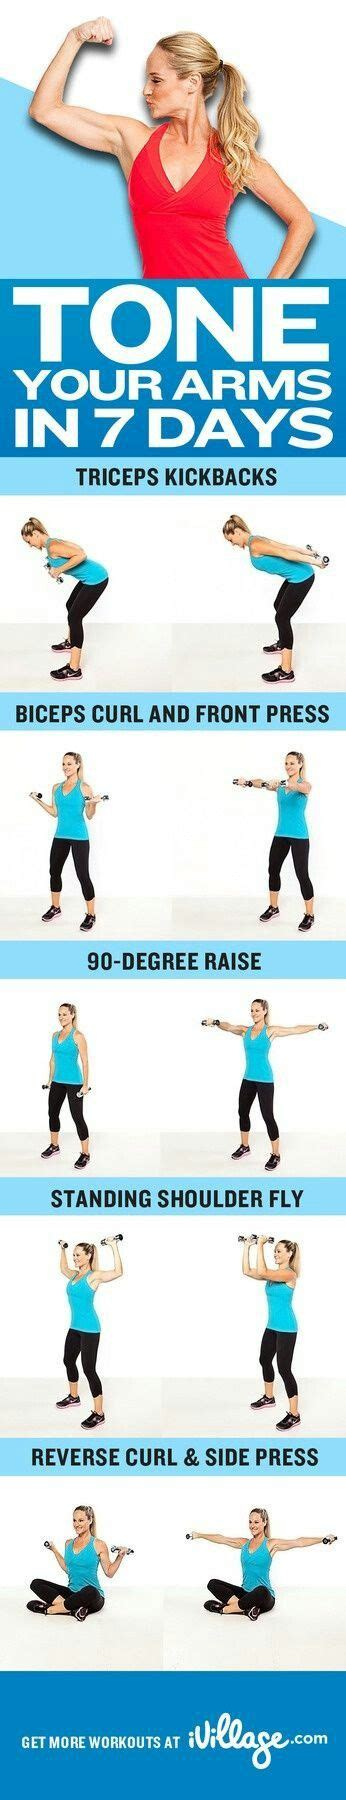 how to get toned arms arm toning team fit pinterest